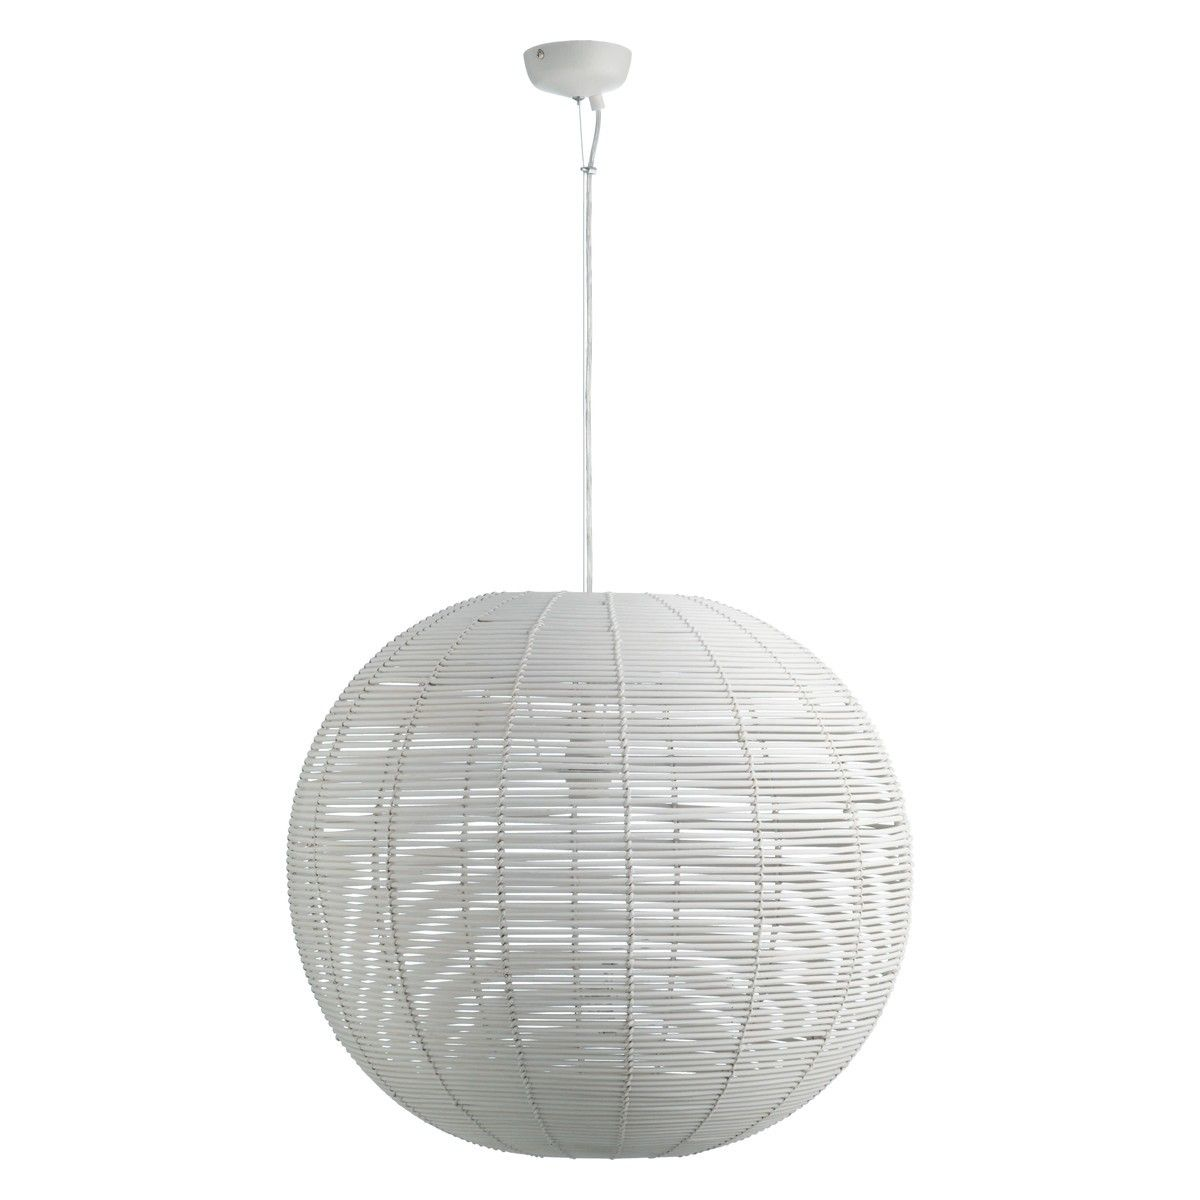 Malmo white rattan ceiling light project house pinterest malmo white rattan ceiling light mozeypictures Images